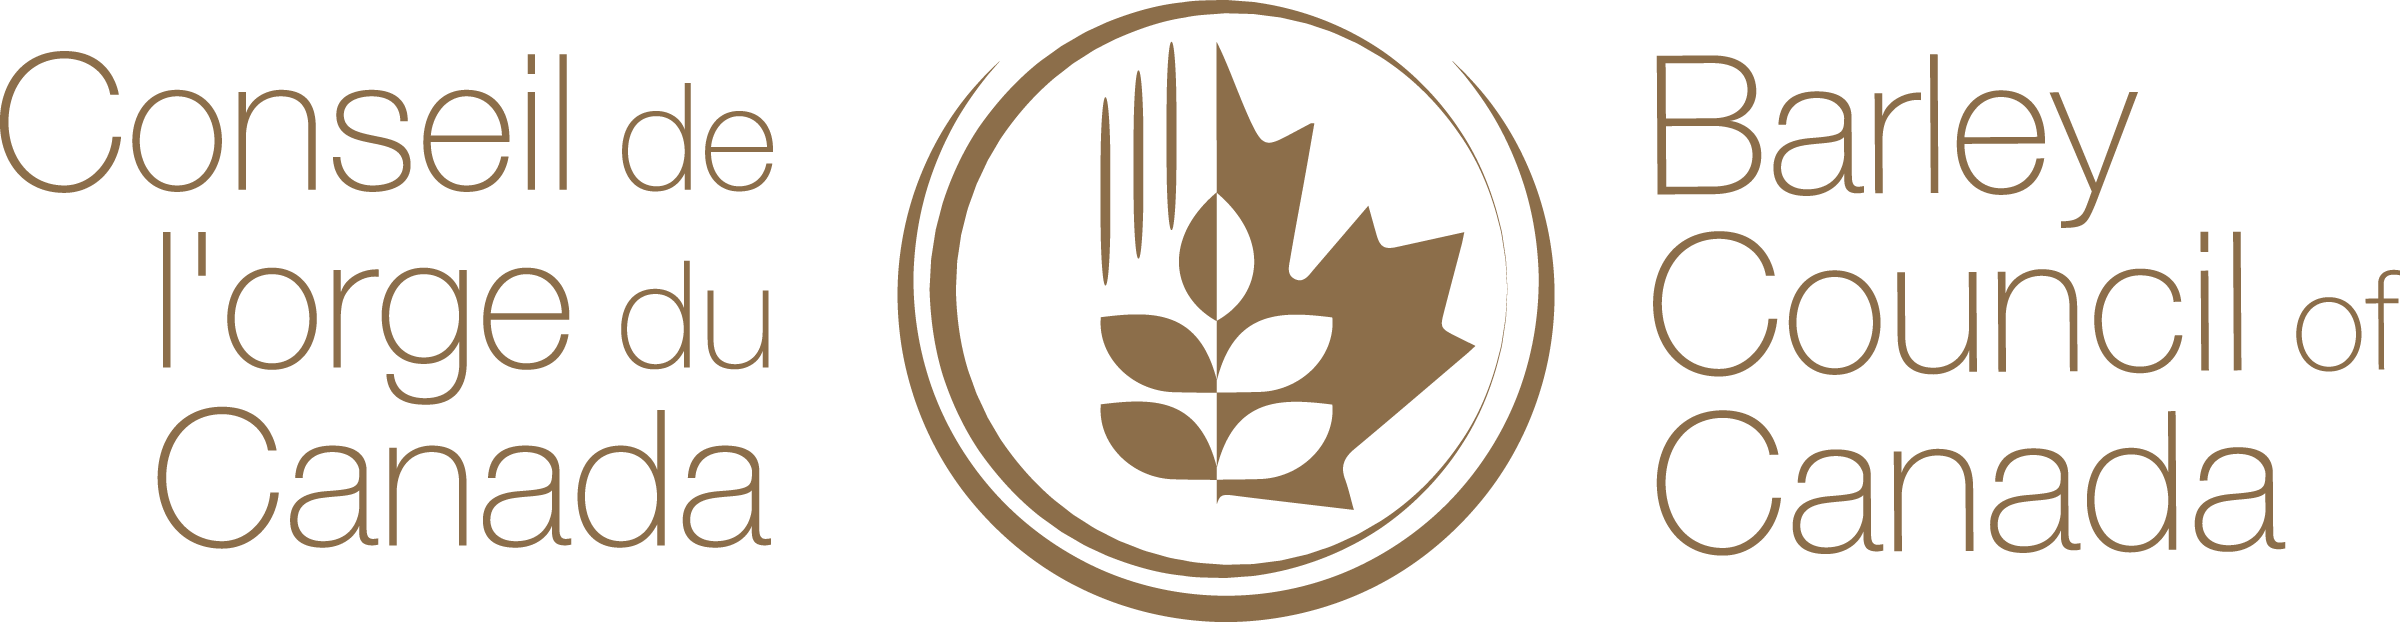 Barley Council of Canada